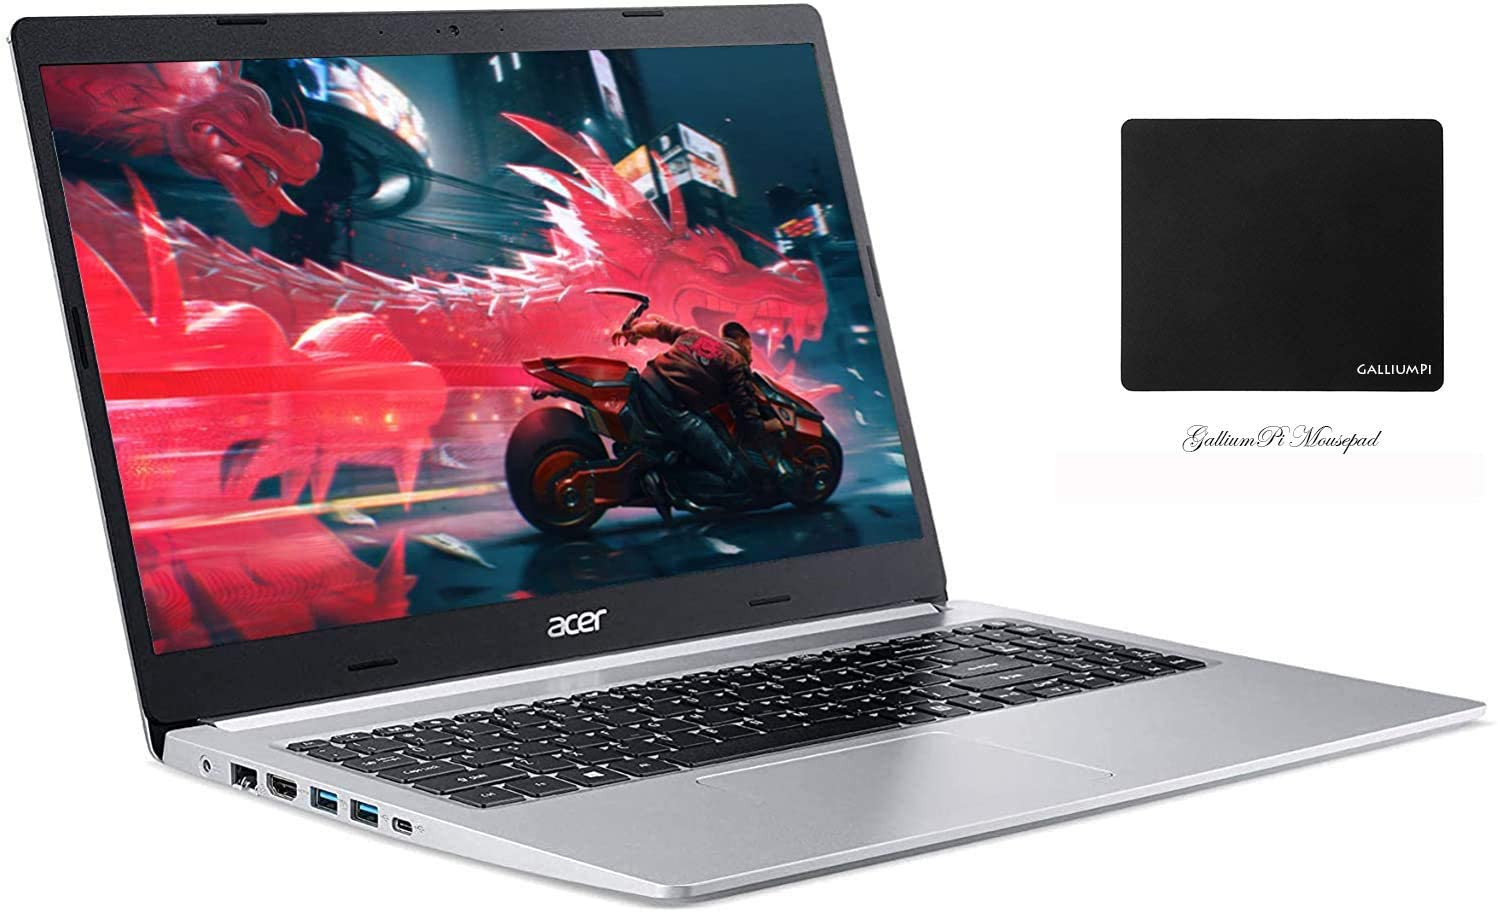 Acer Aspire 5 A515 55 Review A Good Daily Driver With Pwm Free Display And Decent Battery Life